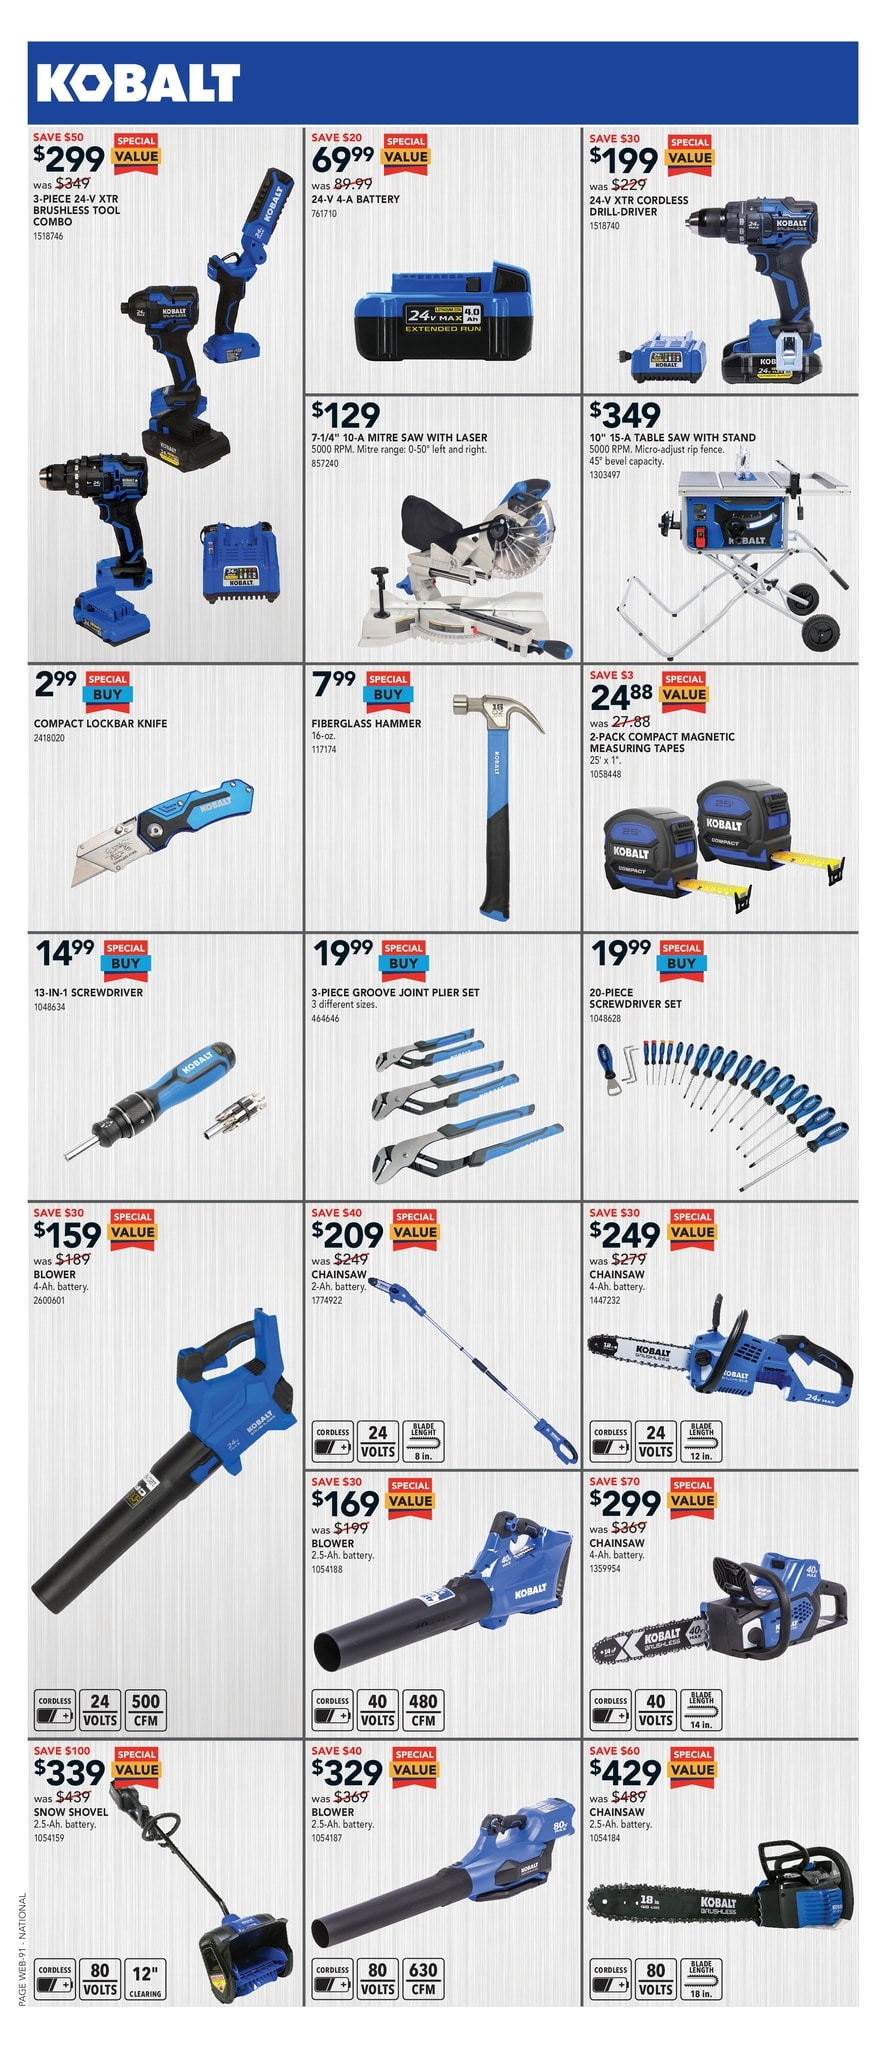 Lowe's - Weekly Flyer Specials - Page 10